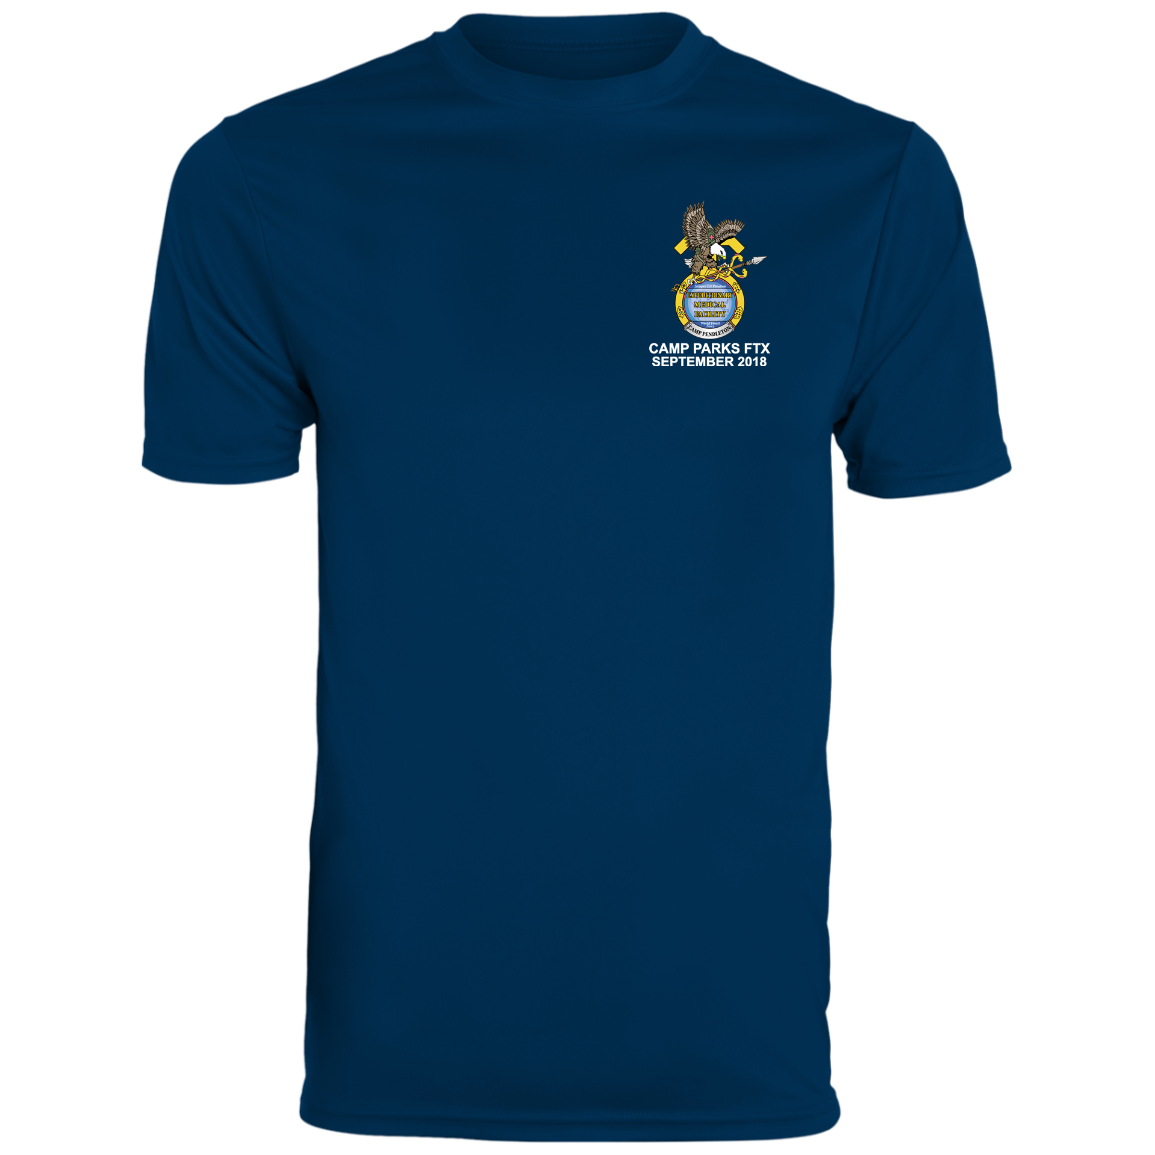 001A AUTHORIZED WITH NWU TYPE 1 UNIFORMS - Unisex T-Shirt - Front Logo Only